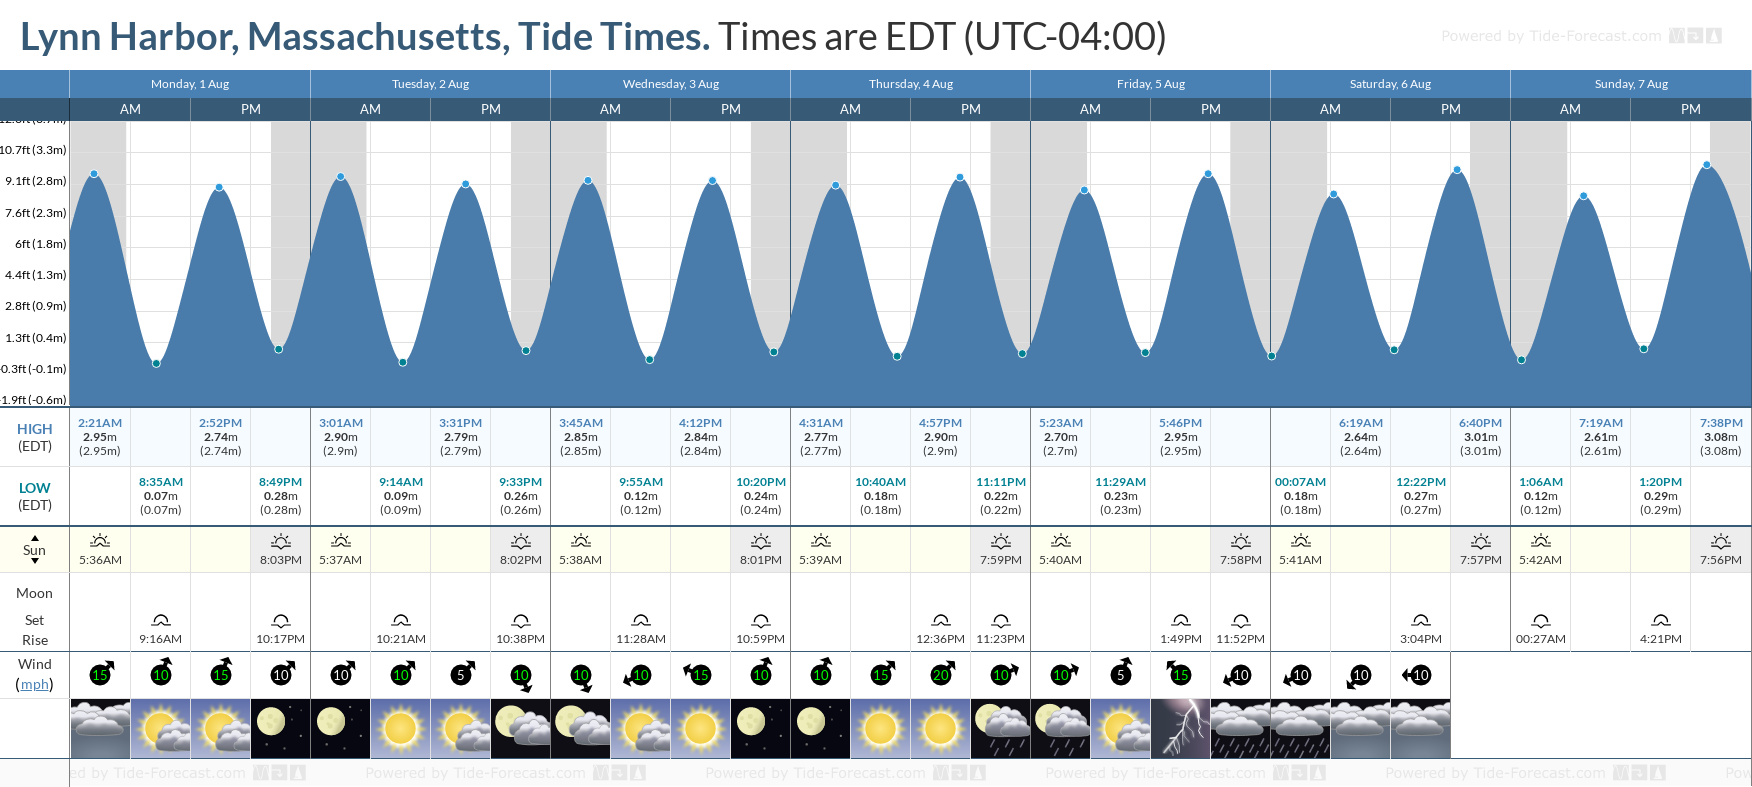 Lynn Harbor, Massachusetts Tide Chart including high and low tide tide times for the next 7 days